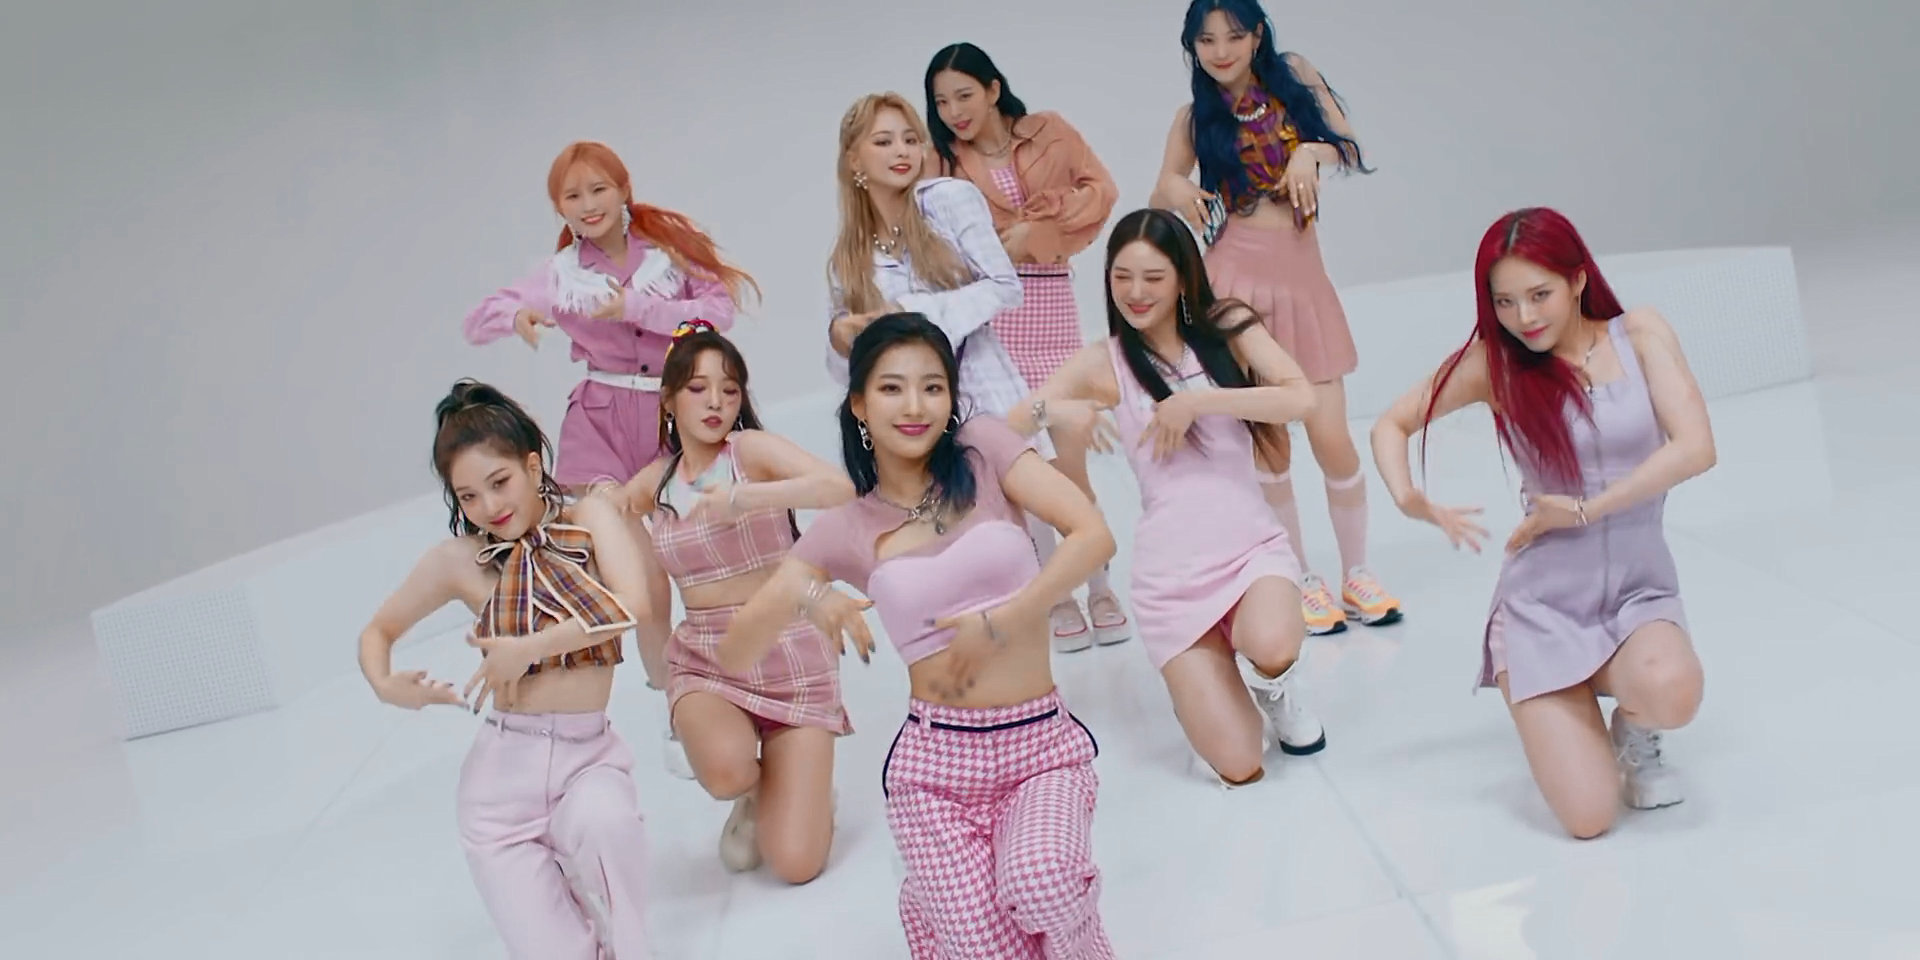 fromis_9 Feel Good (Secret Code) who's who